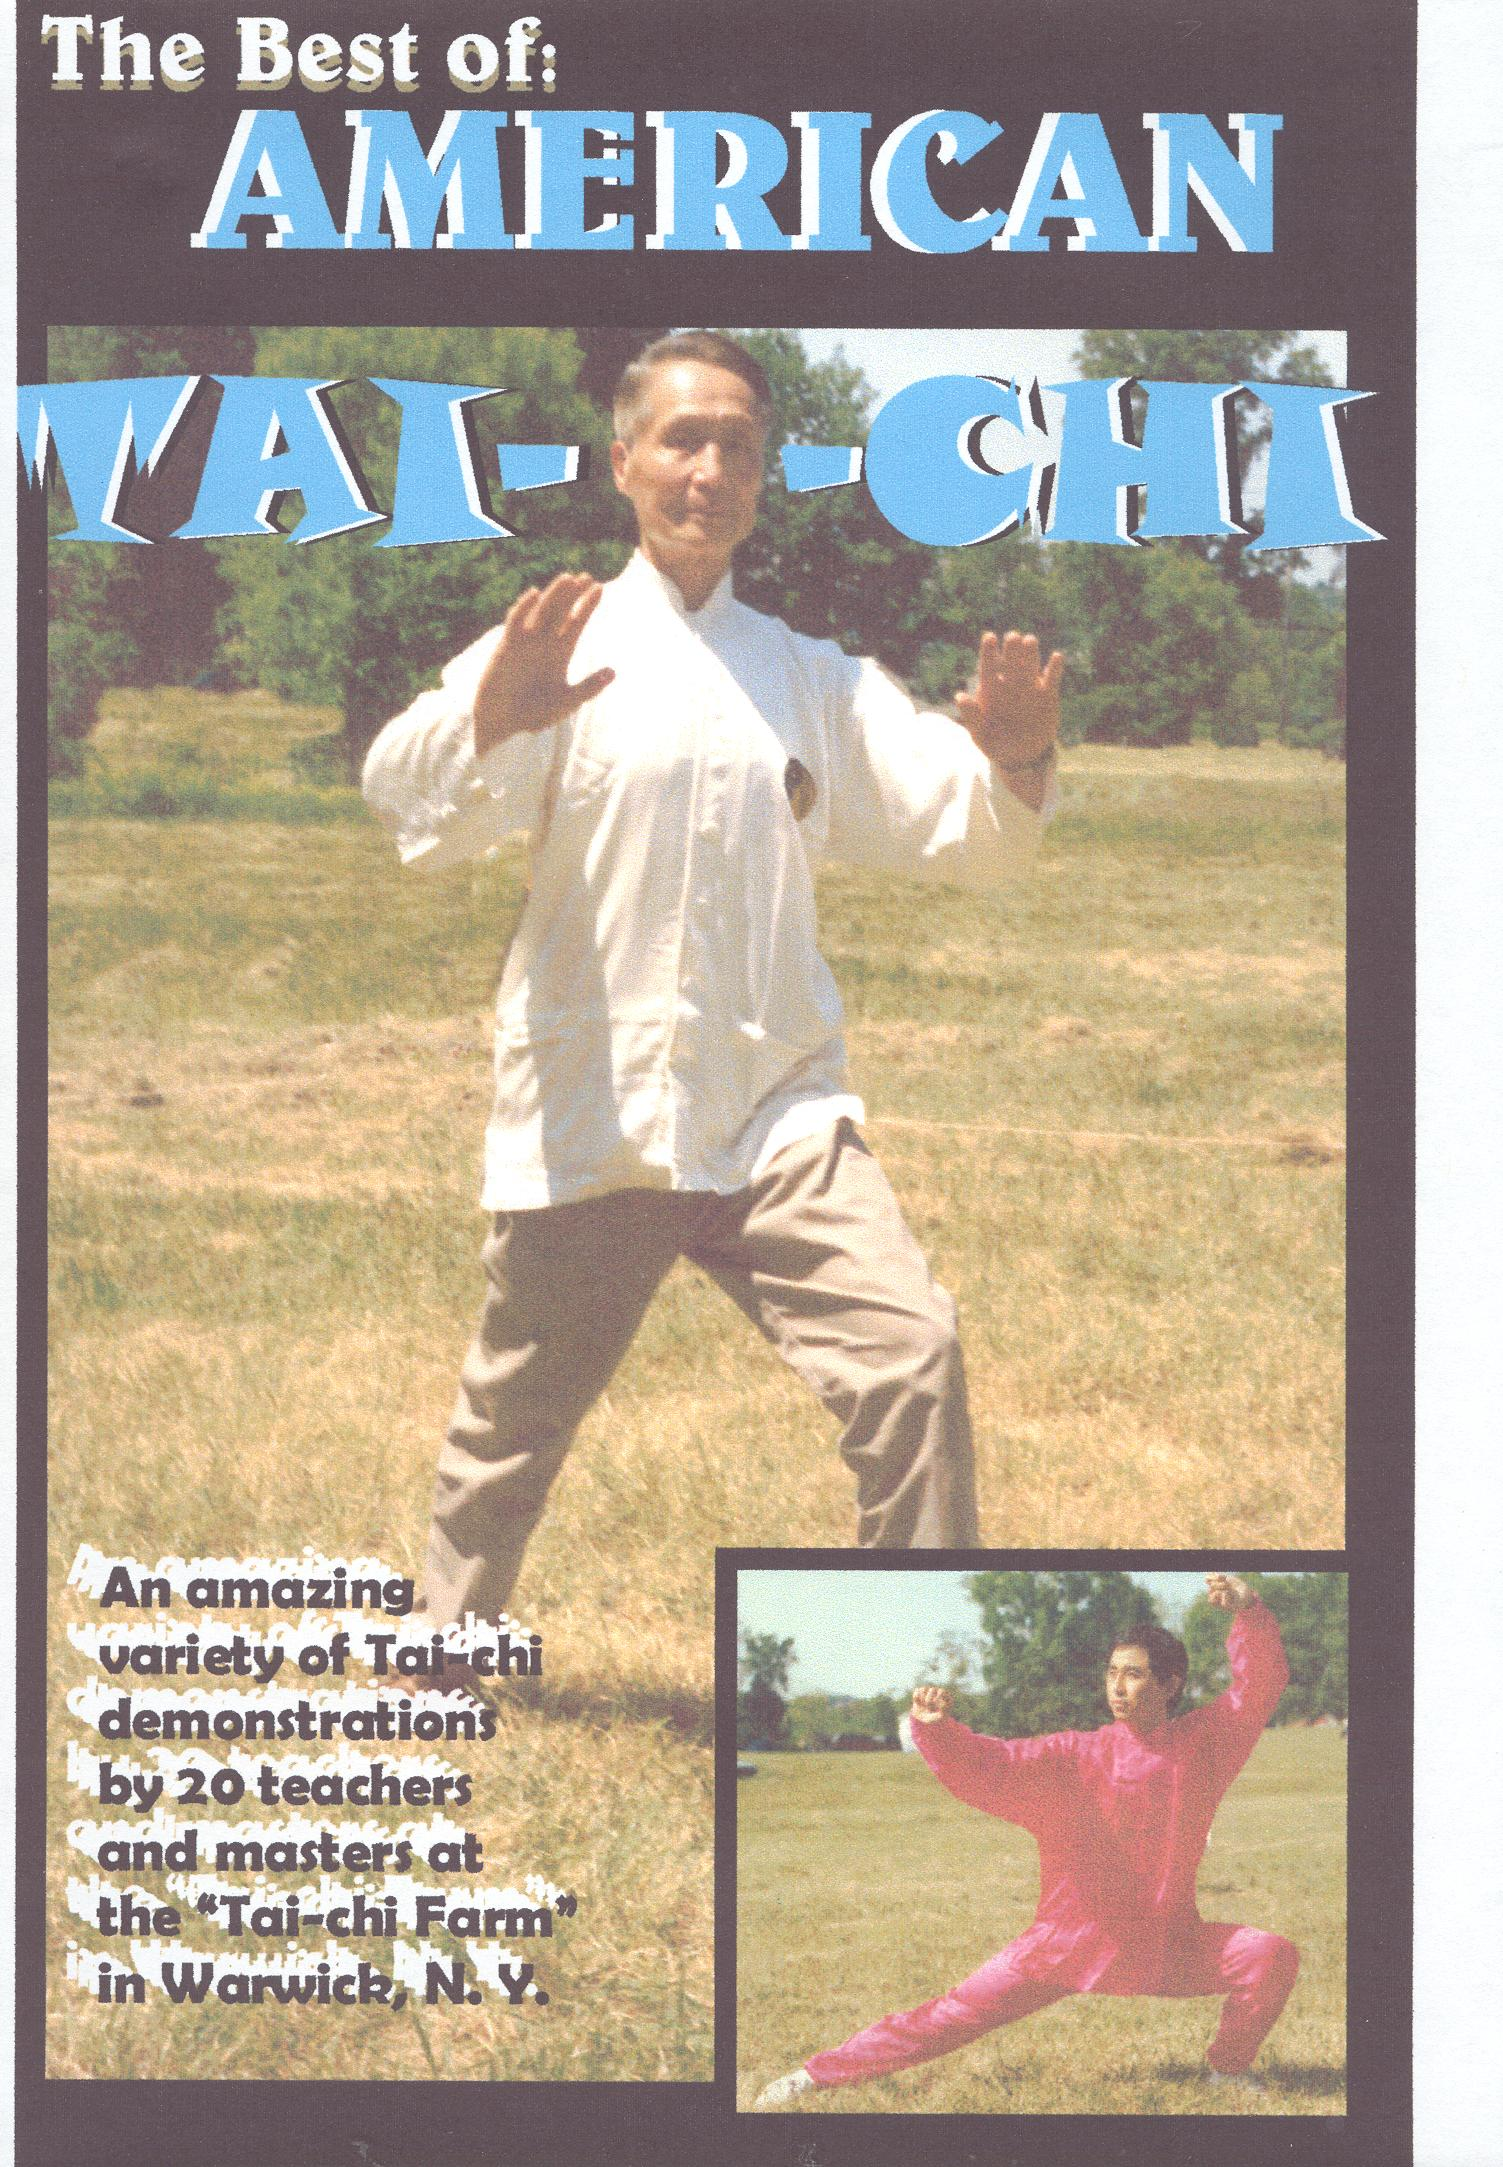 The Best of American Tai-Chi